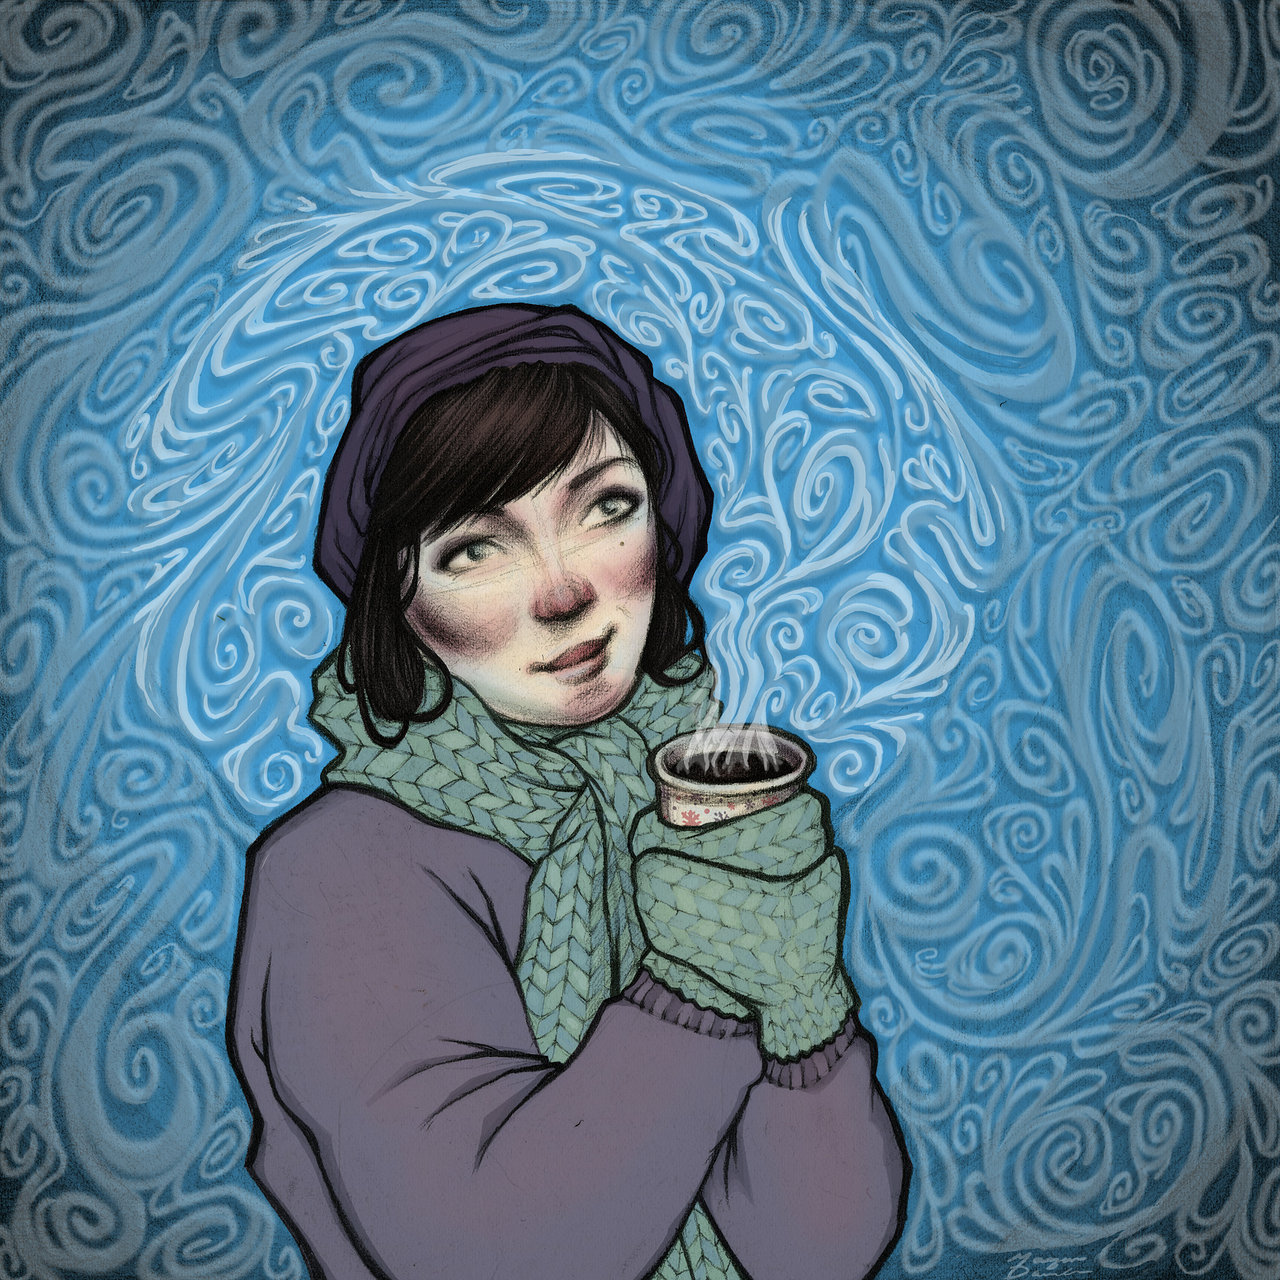 WinterCoffee_Graphite,Digital